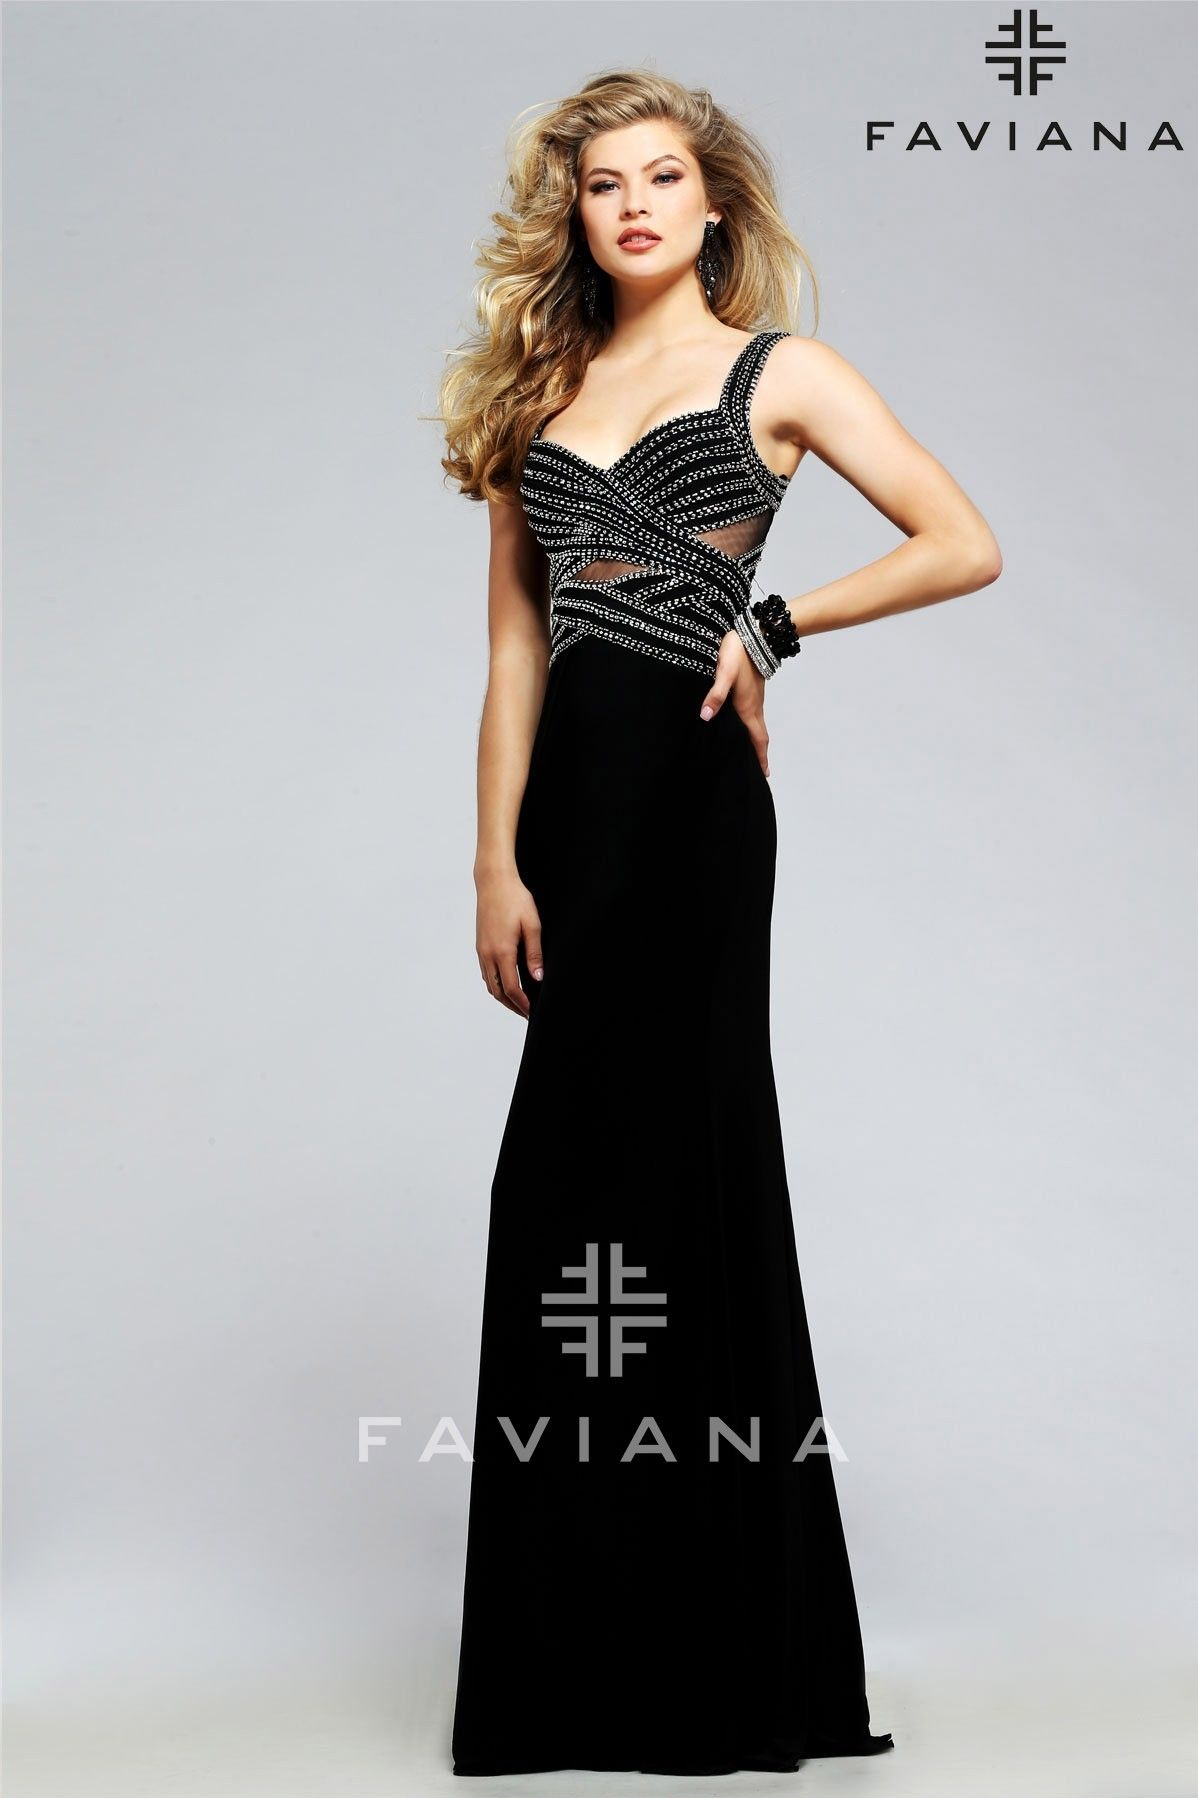 Black dress for prom night - S7806 Black Cut Outs Faviana Glamour Black Prom Dress With Open Back At Hope S